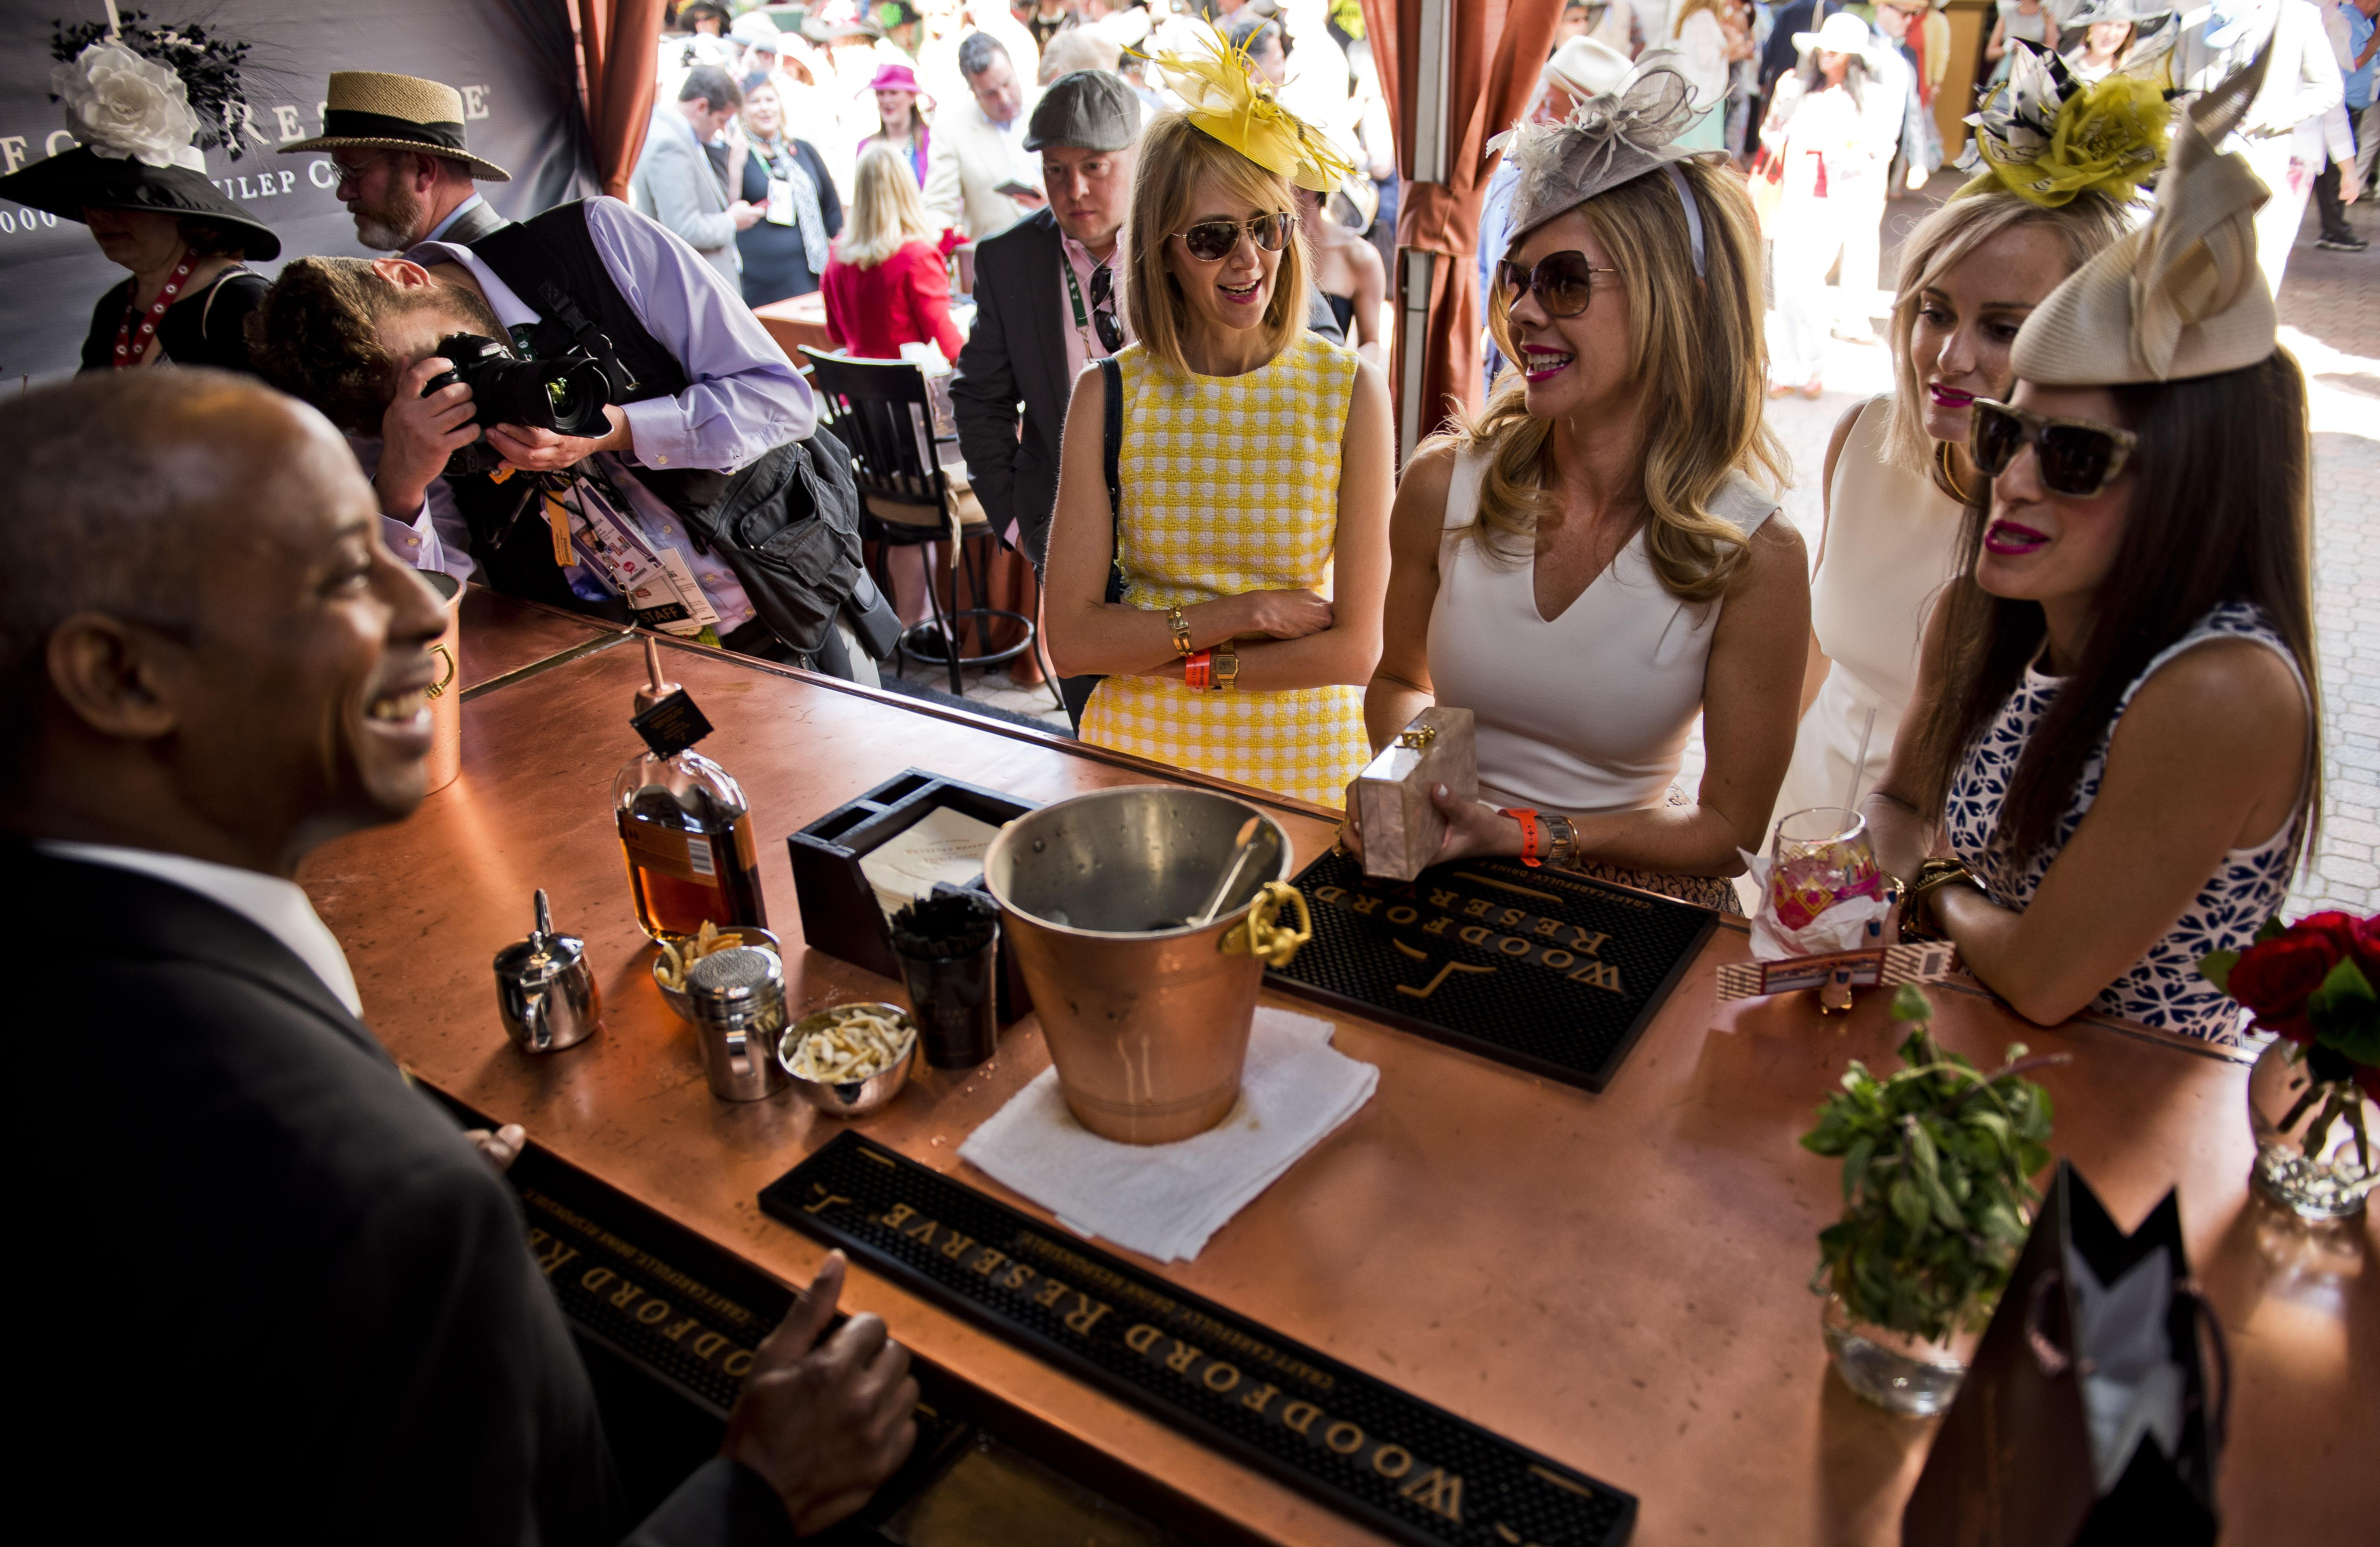 A Woodford Reserve bar at the Kentucky Derby